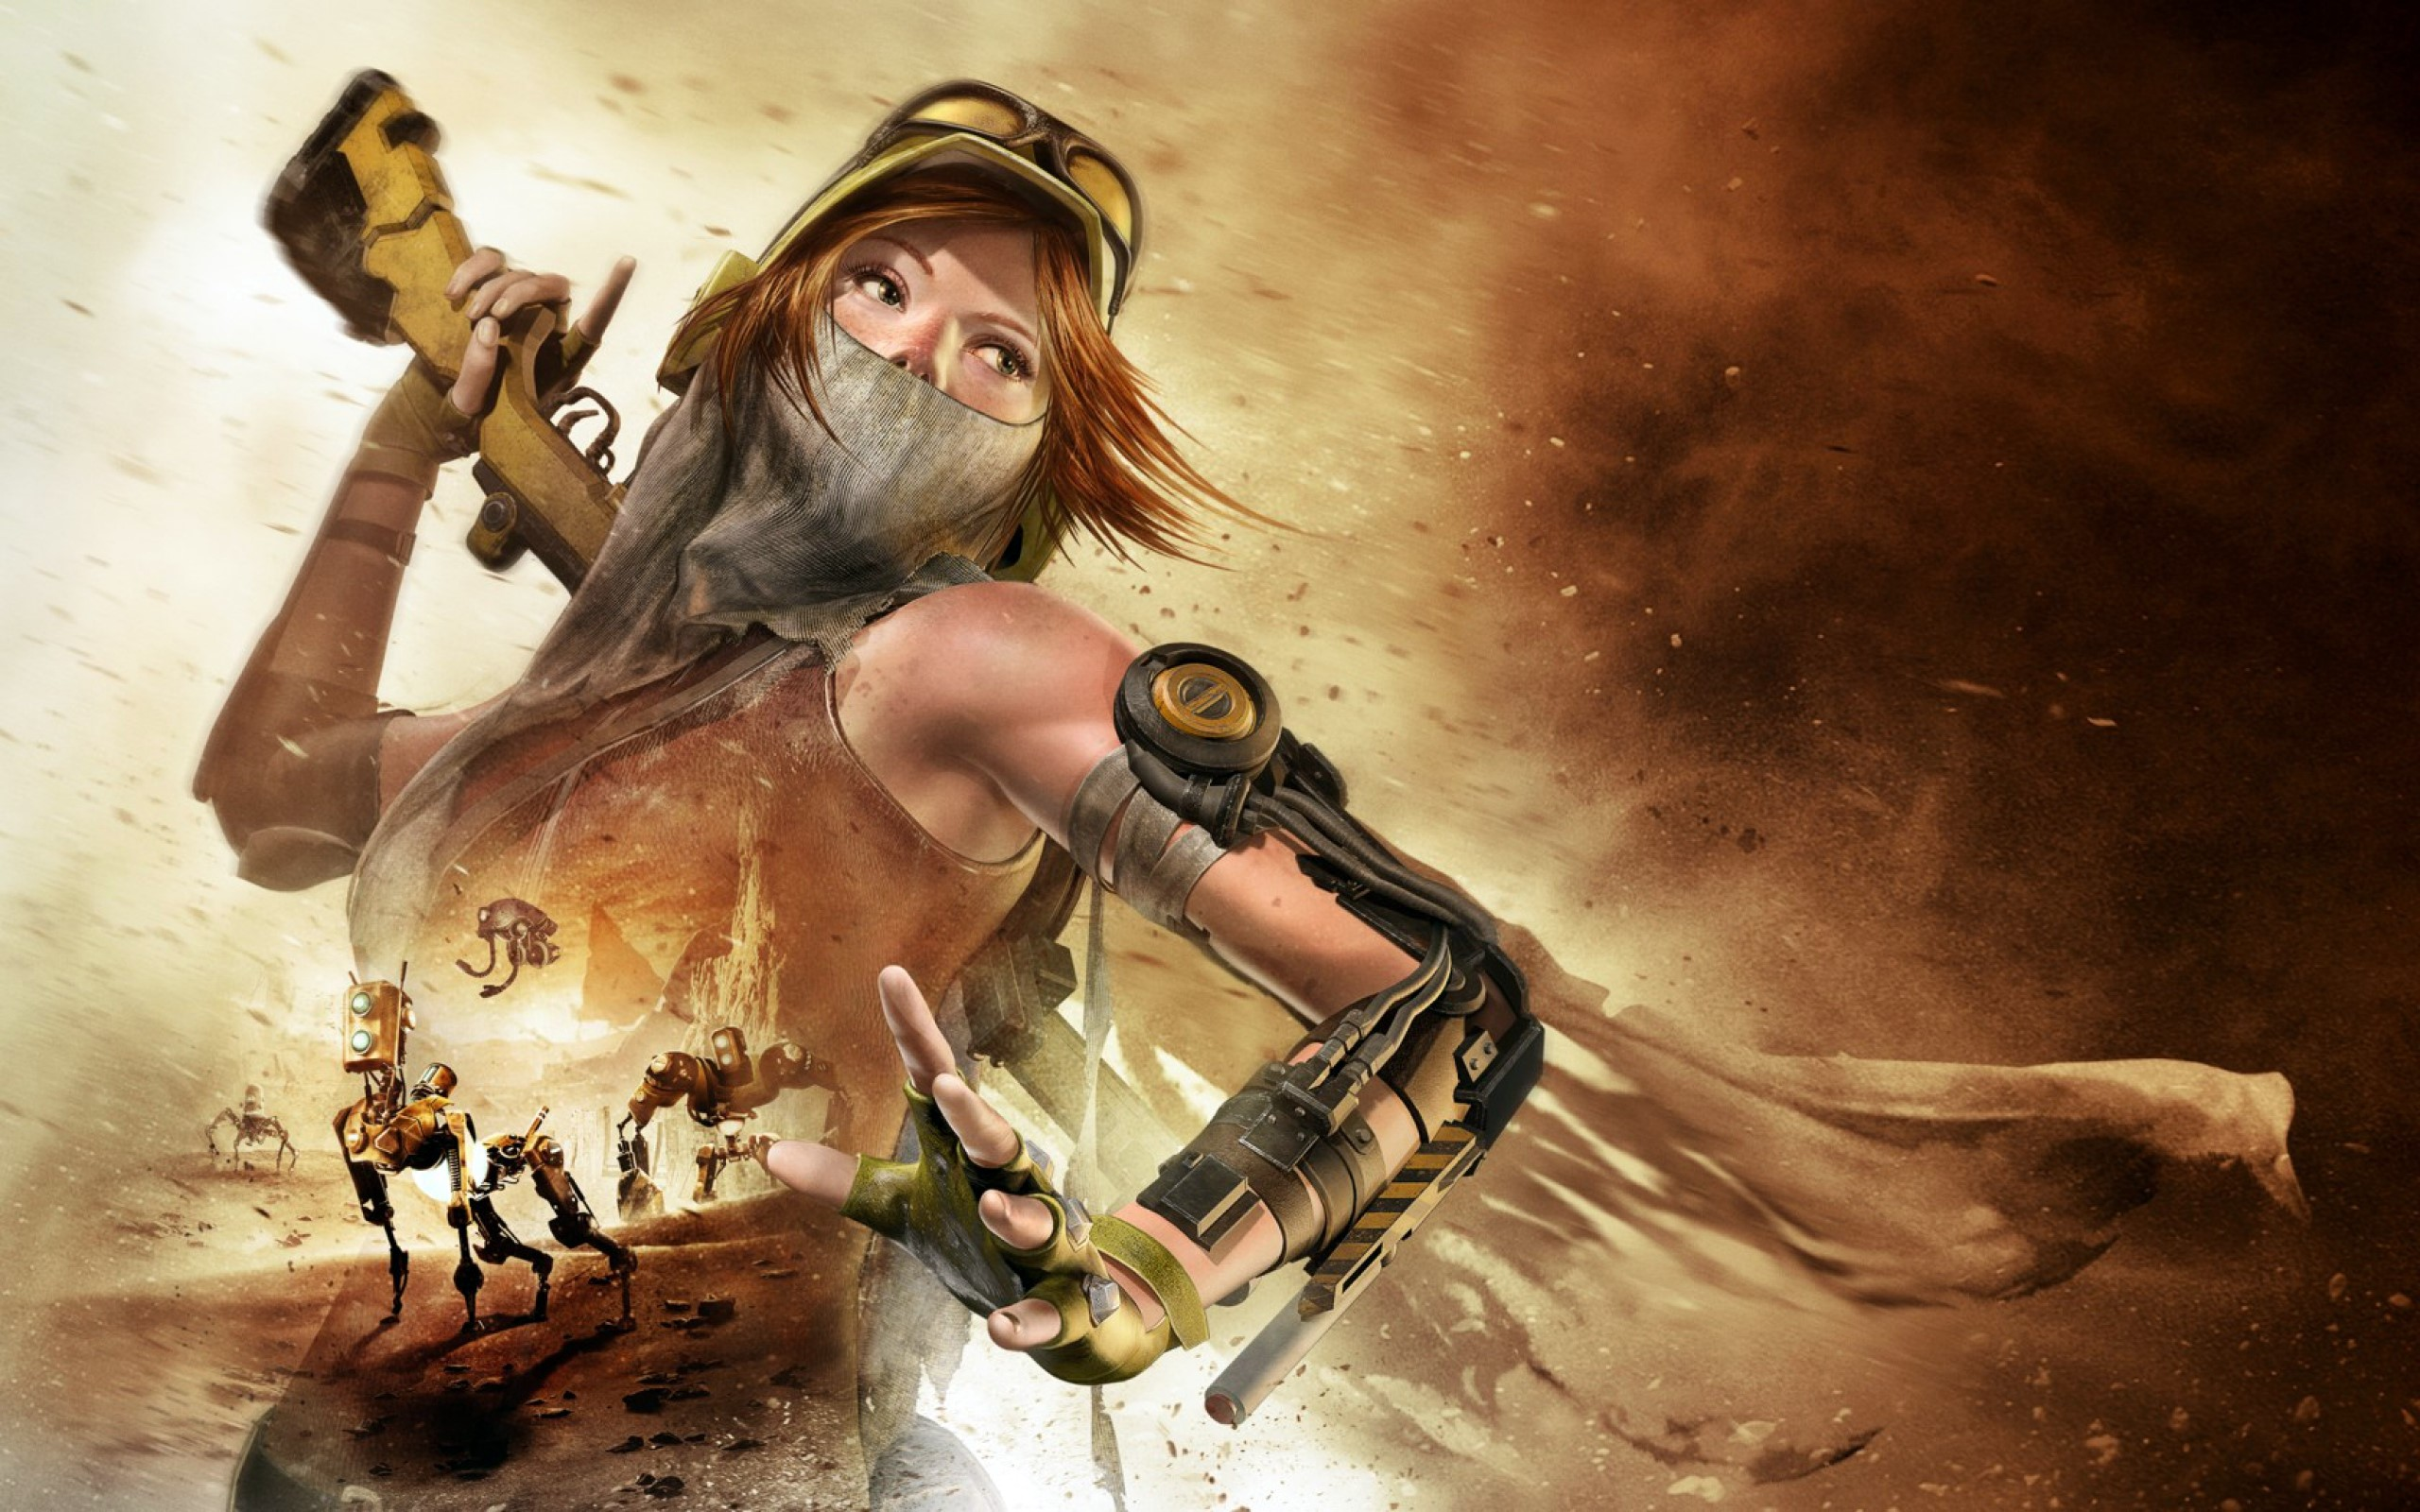 recore_game_girl_weapon_110698_2560x1600